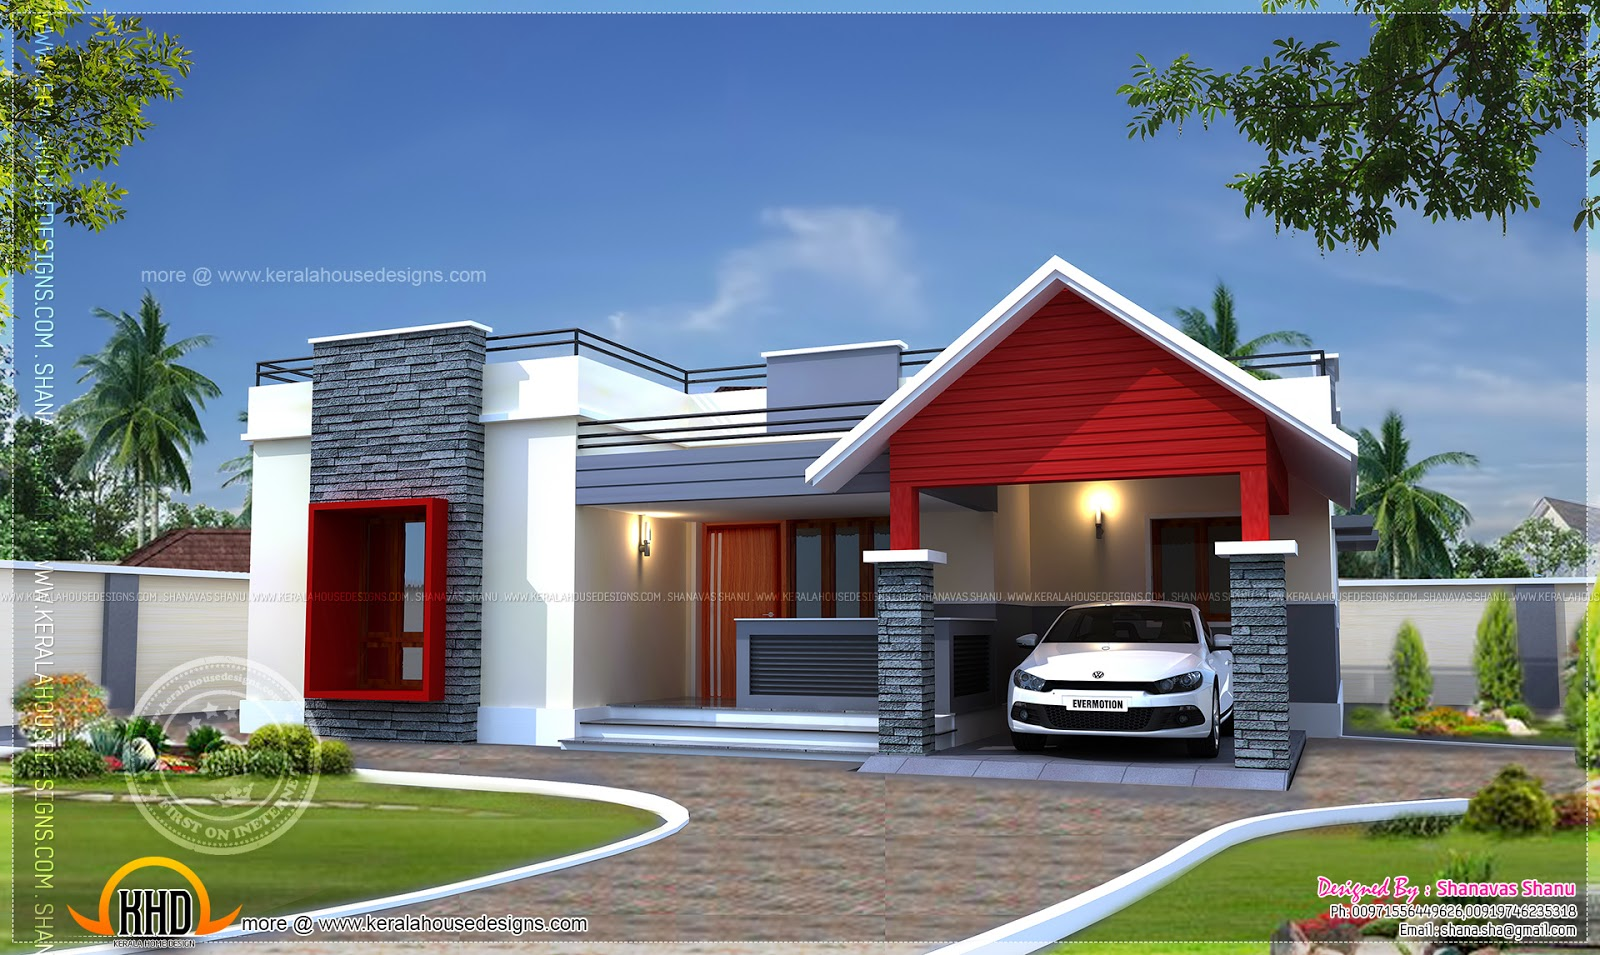 Single floor home plan in 1400 square feet kerala home for Single floor house plans kerala style